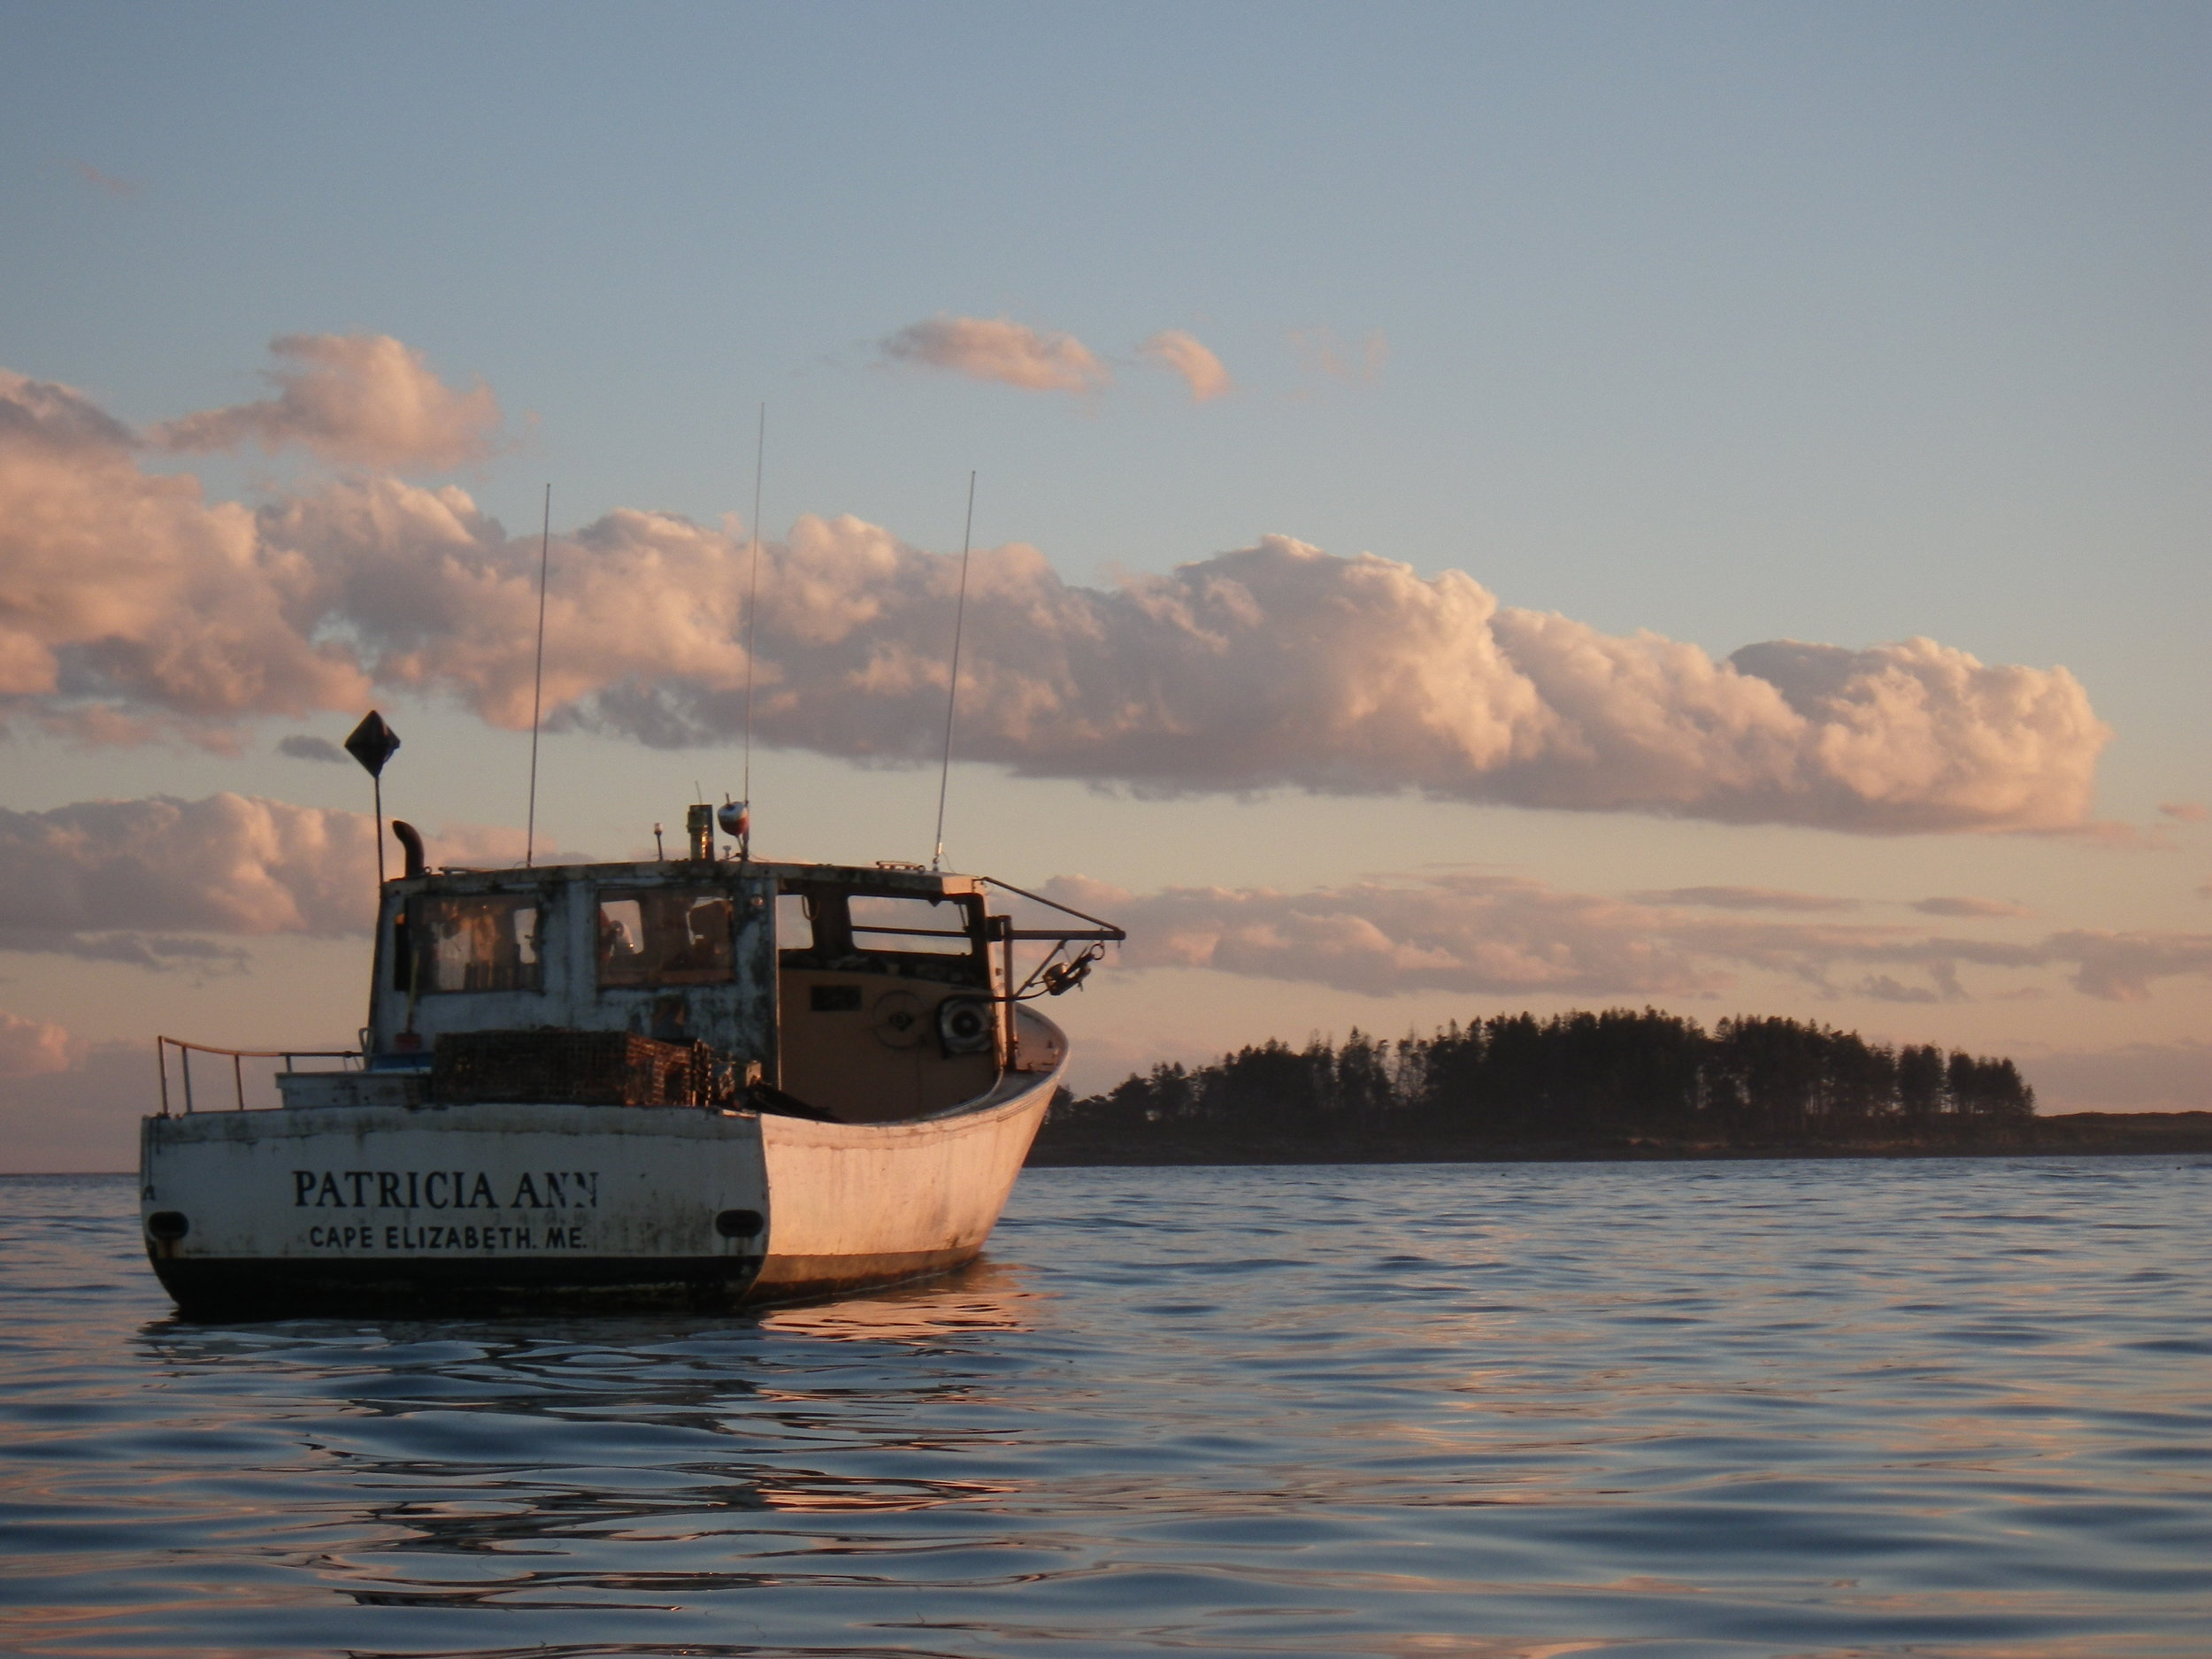 Crescent Beach Tours - We offer tours two days a week at Crescent Beach State Park in Cape Elizabeth Maine